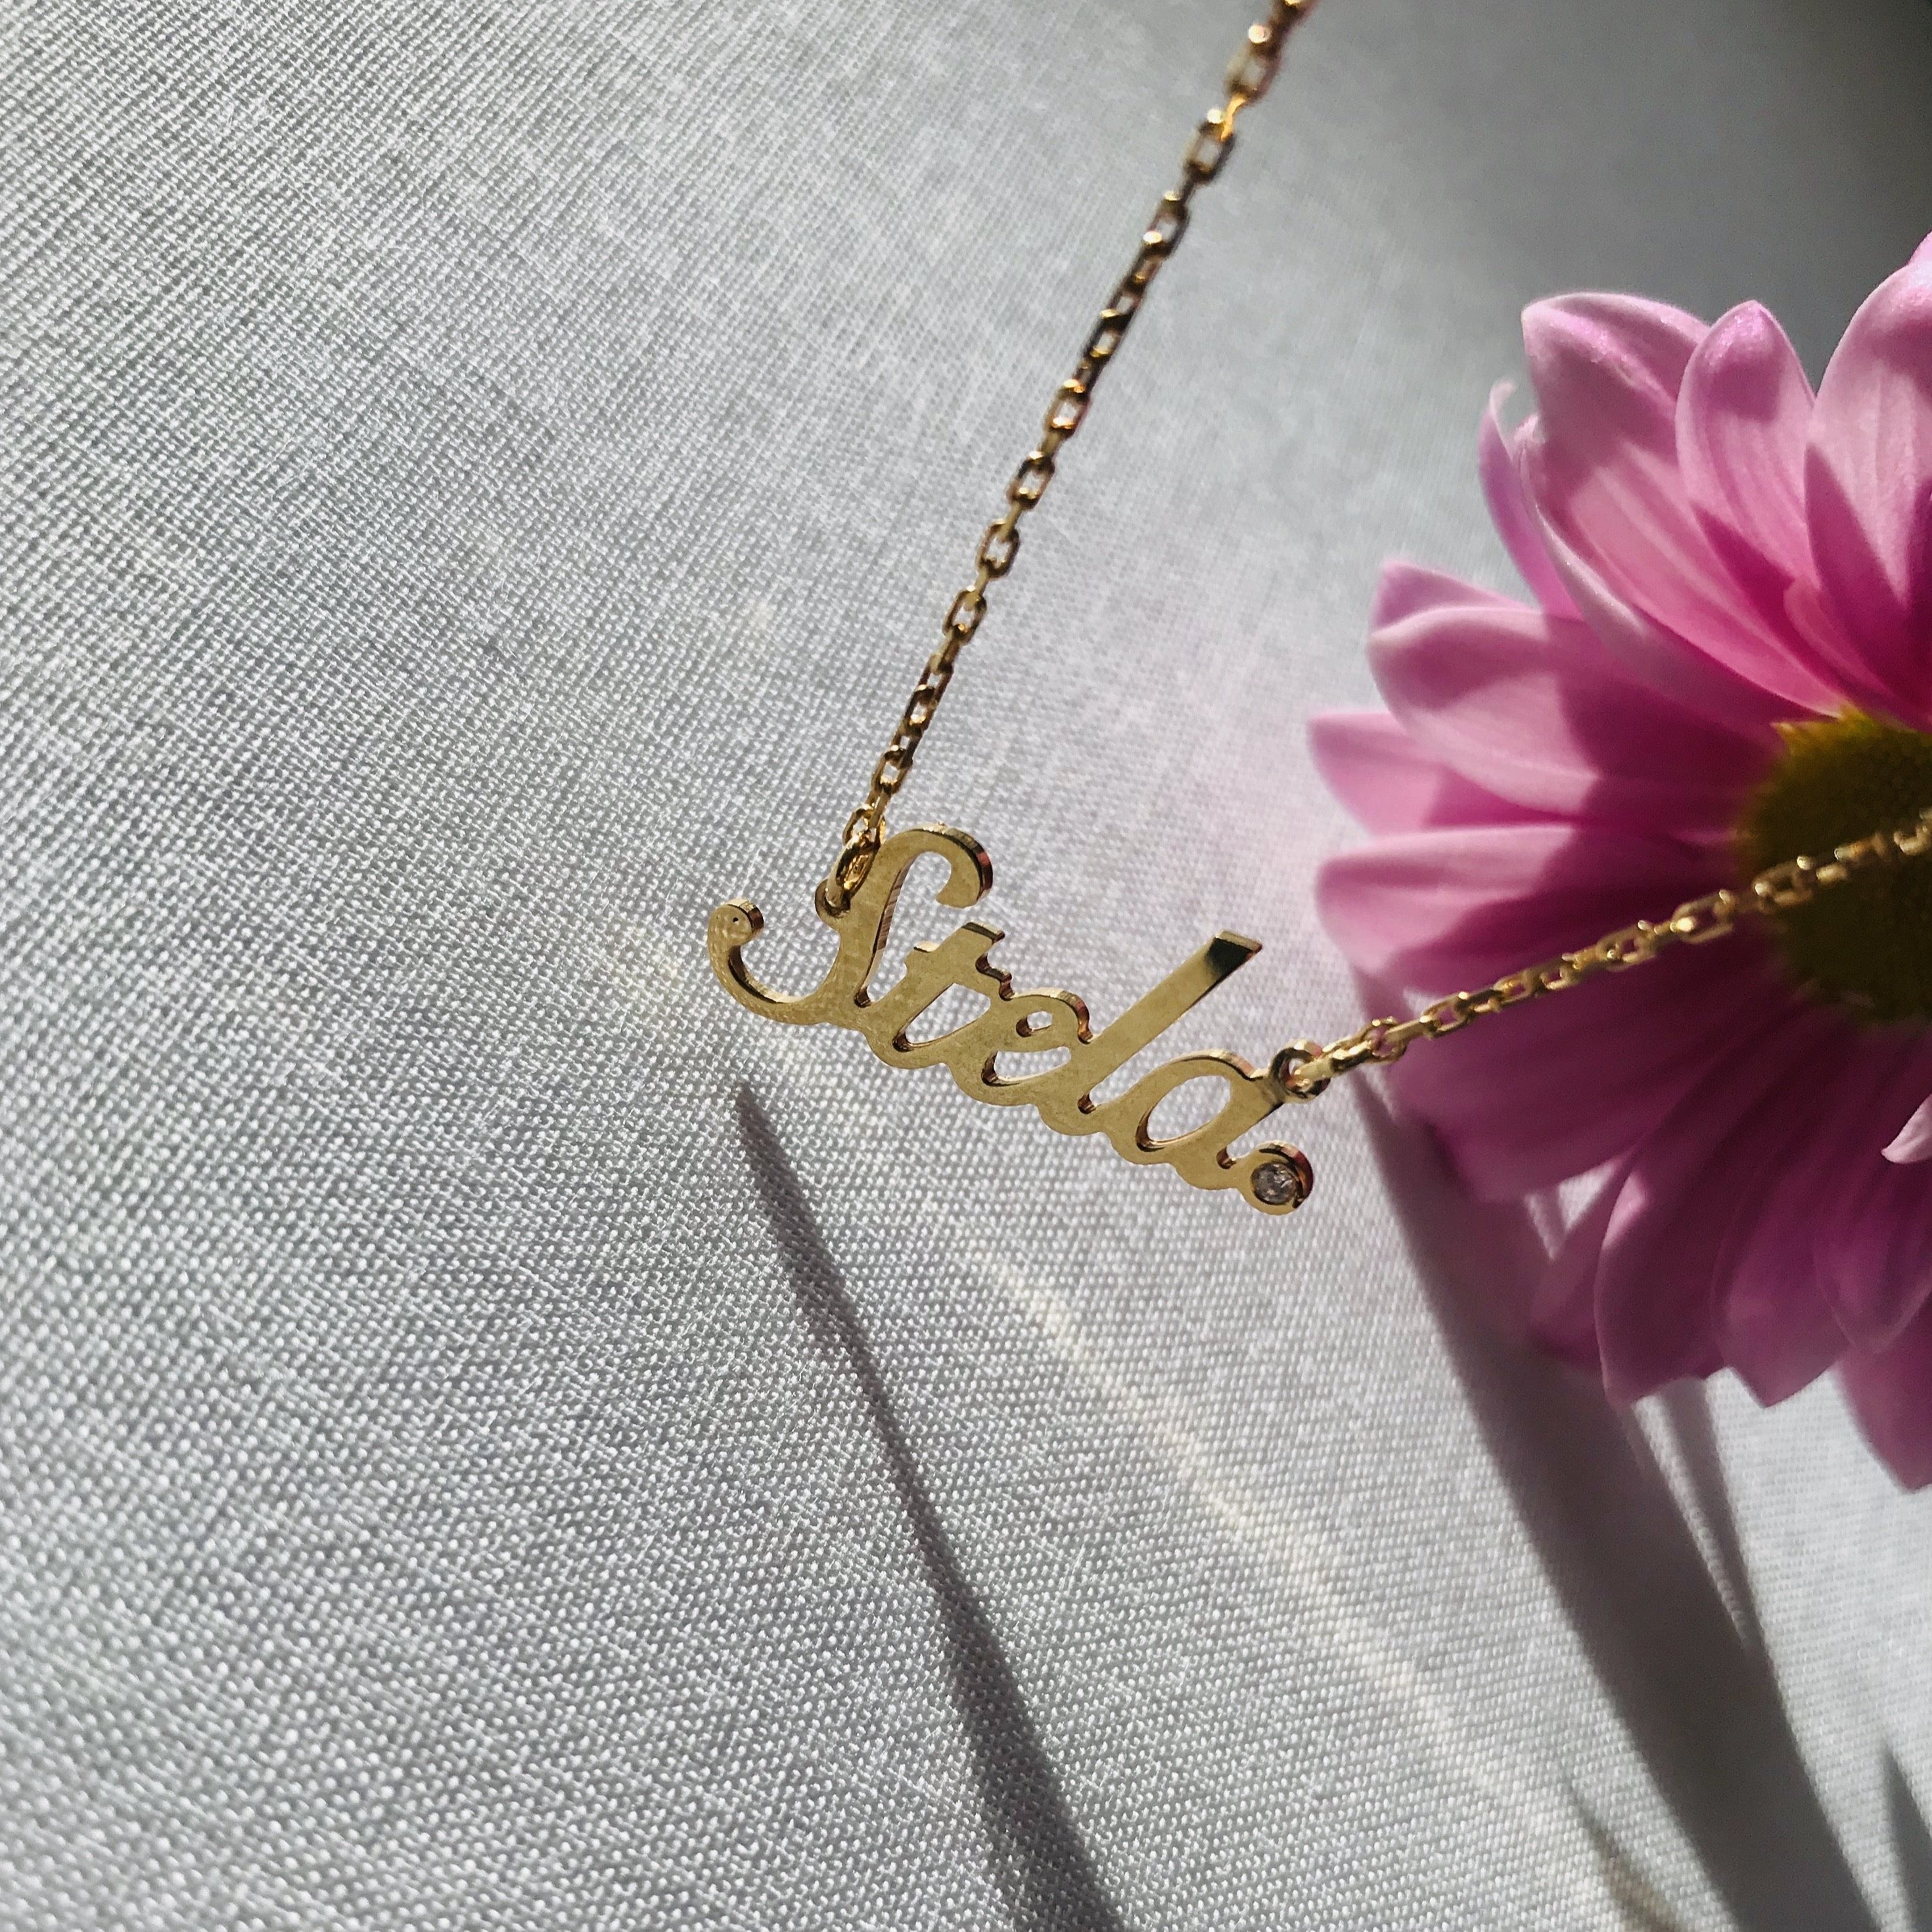 MY NAME Necklace - BYVELA designer jewellery in silver and gold